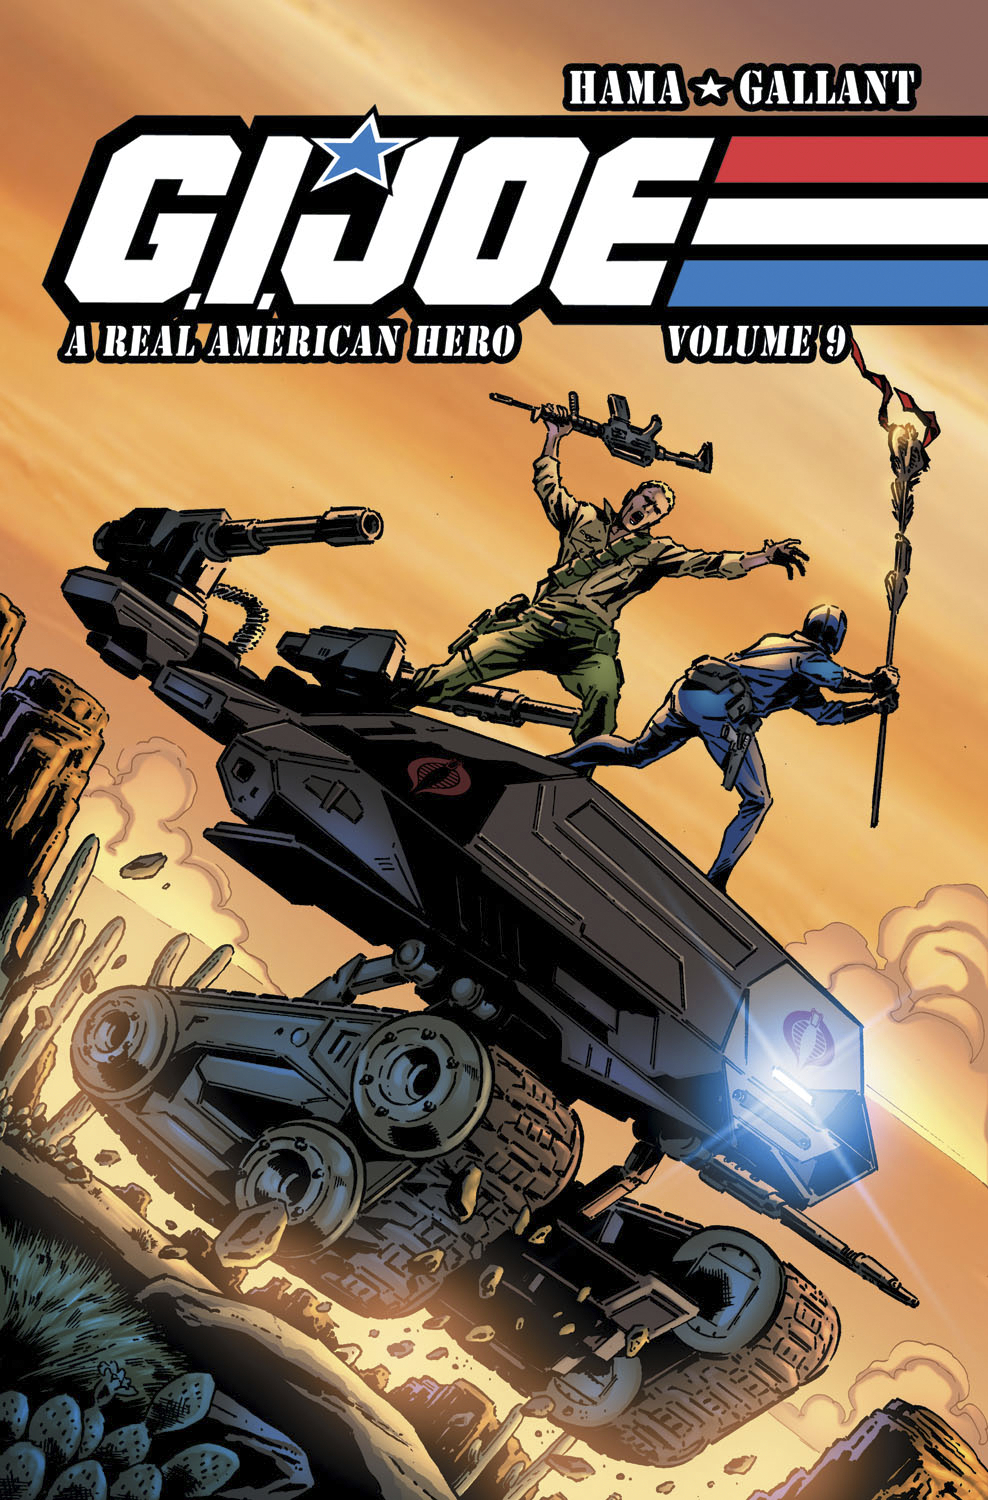 GI JOE A REAL AMERICAN HERO TP VOL 09